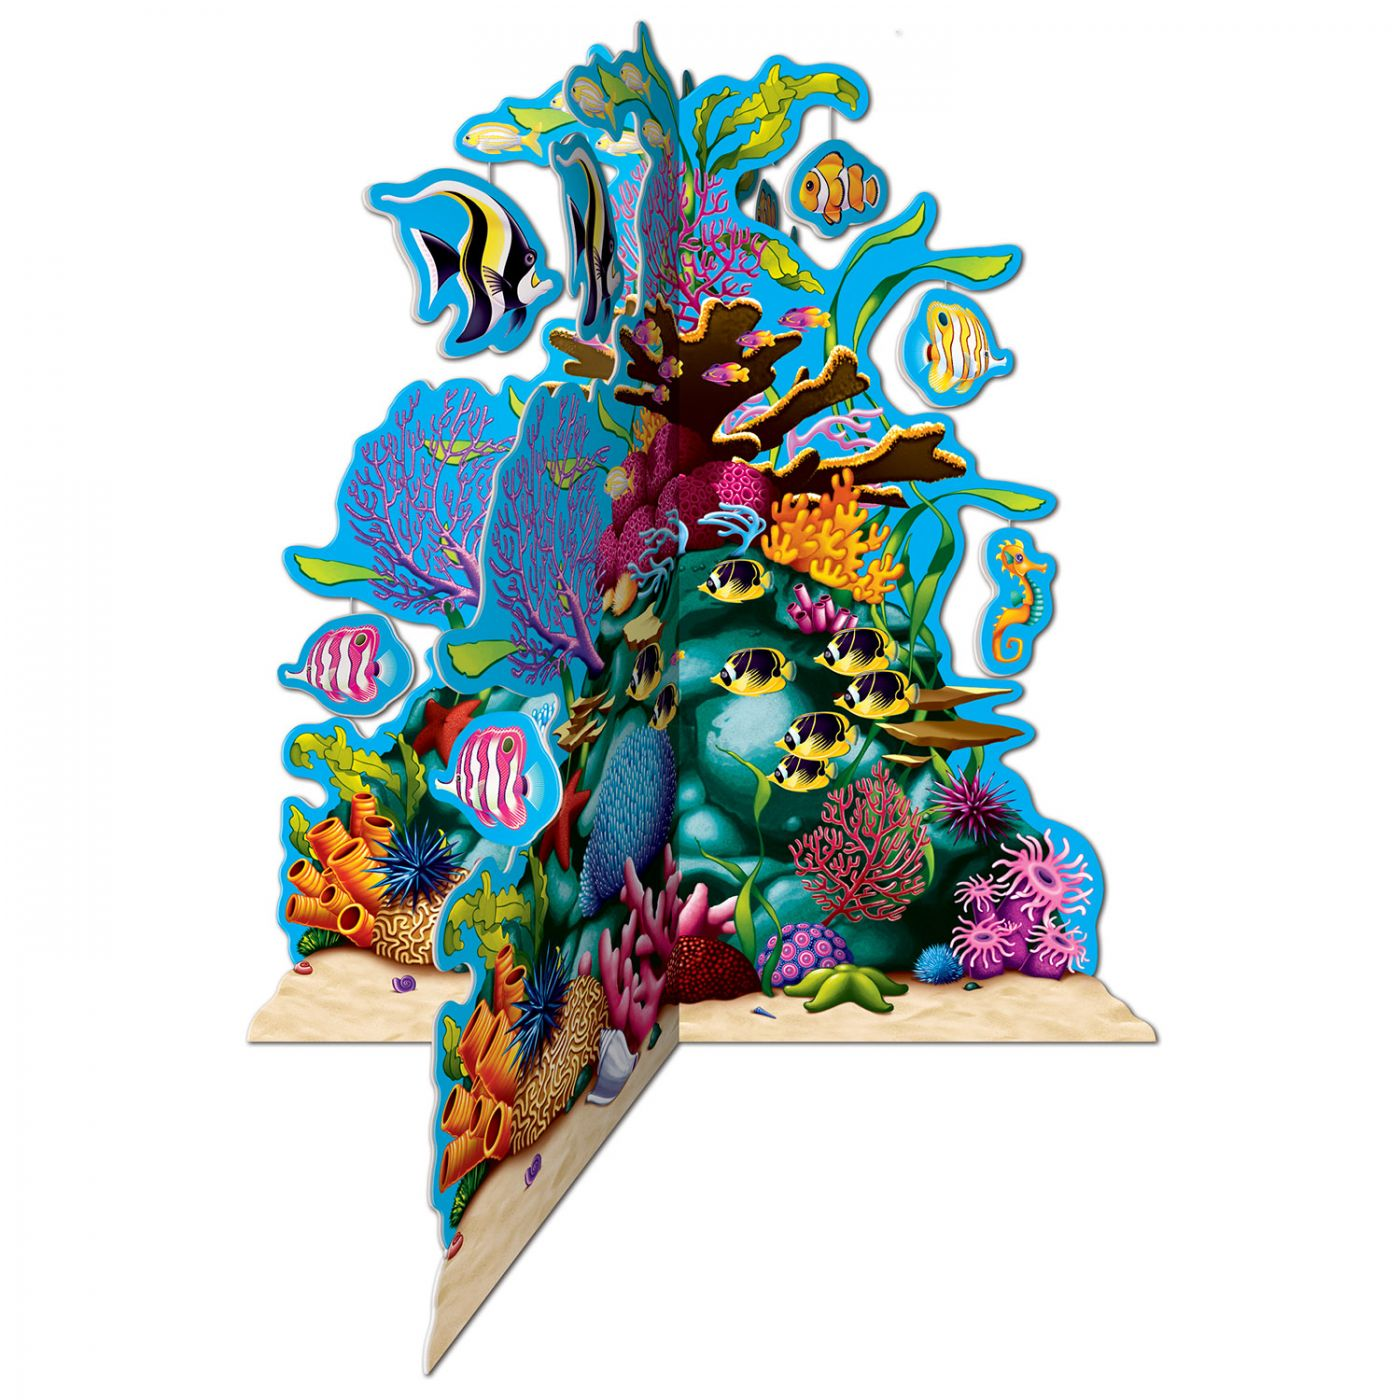 Image of 3-D Coral Reef Centerpiece